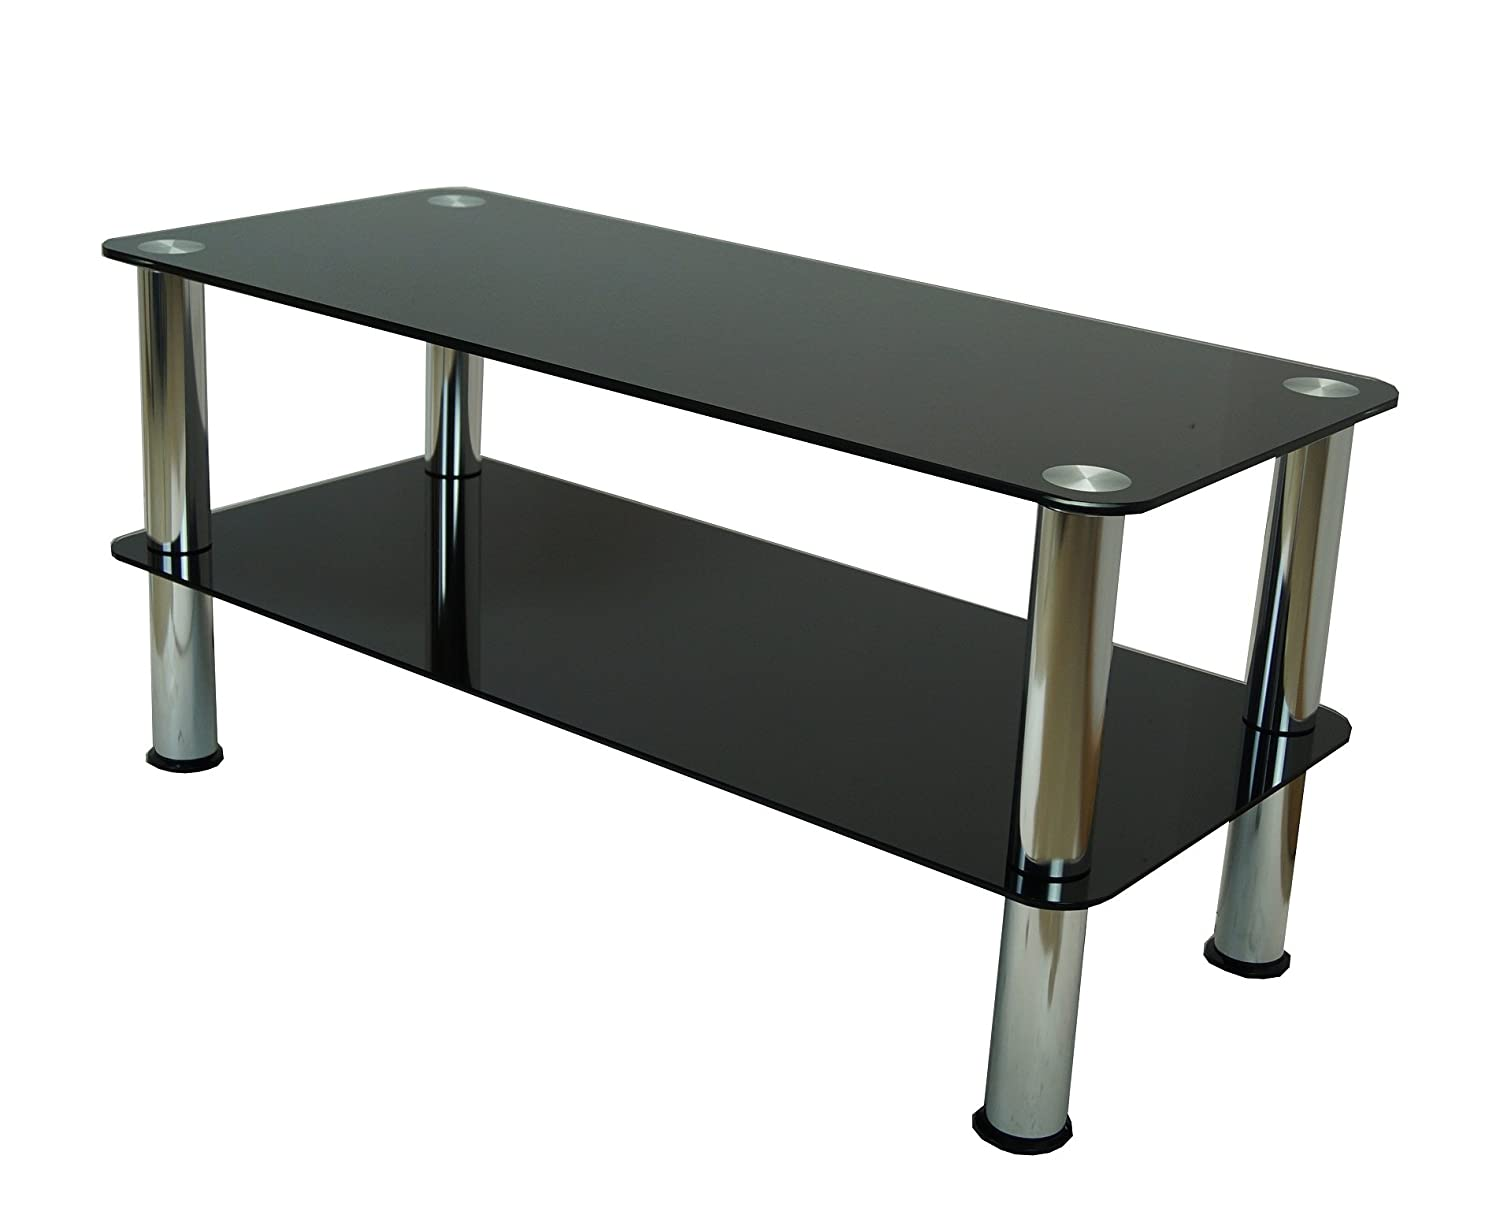 Mountright coffee table tv stand side table black glass mountright coffee table tv stand side table black glass silver leg amazon tv geotapseo Image collections